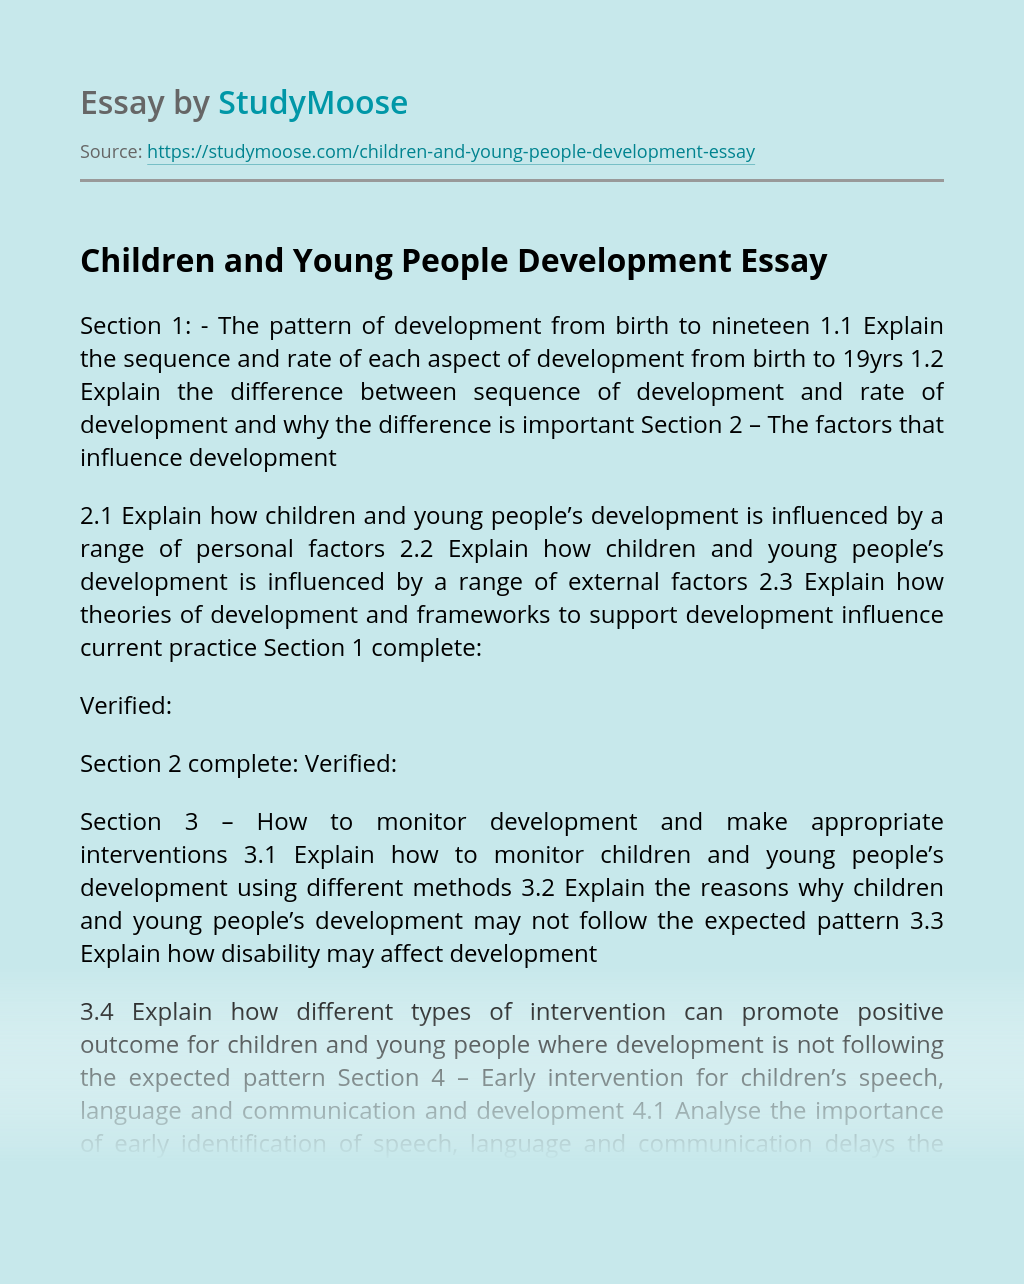 Children and Young People Development